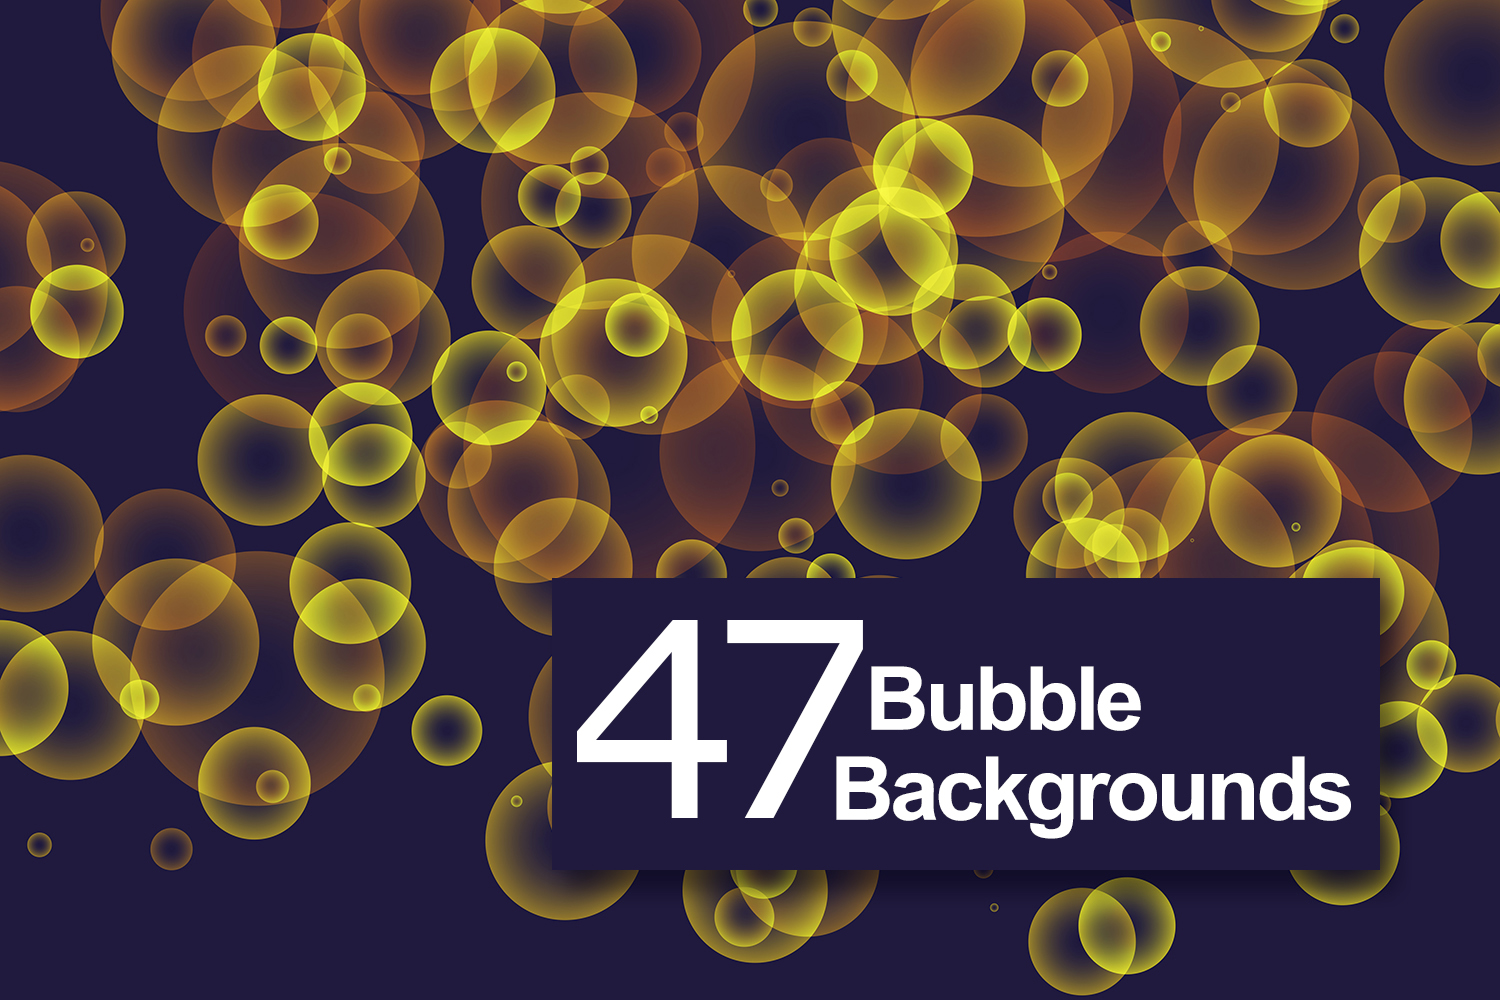 47 Bubbles Backgrounds example image 1